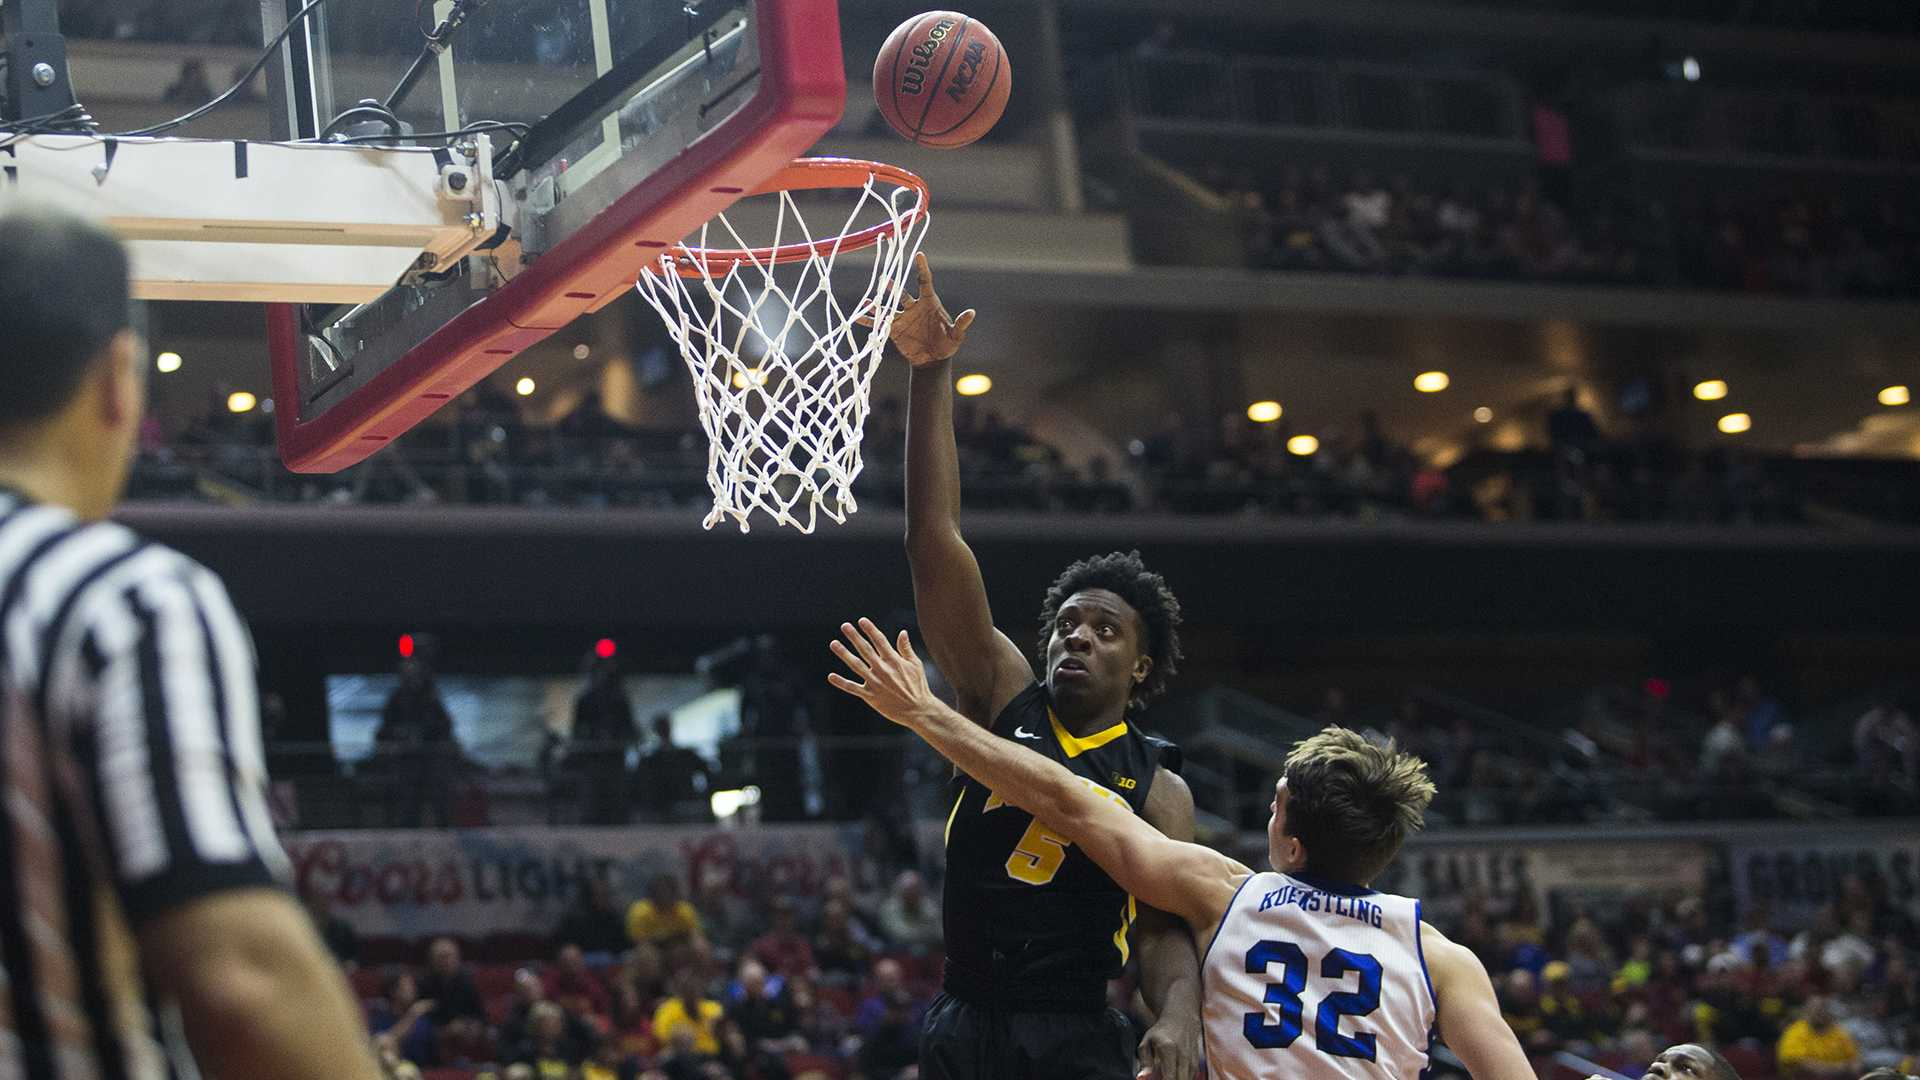 Iowa's Tyler Cook (5) shoots the ball over Drake's Kory Kuenstling (32) during the Hy-Vee Classic men's basketball tournament at Wells Fargo Arena in Des Moines on Saturday, Dec. 16, 2017. The Hawkeyes beat the Bulldogs 90-64. (Ben Allan Smith/The Daily Iowan)